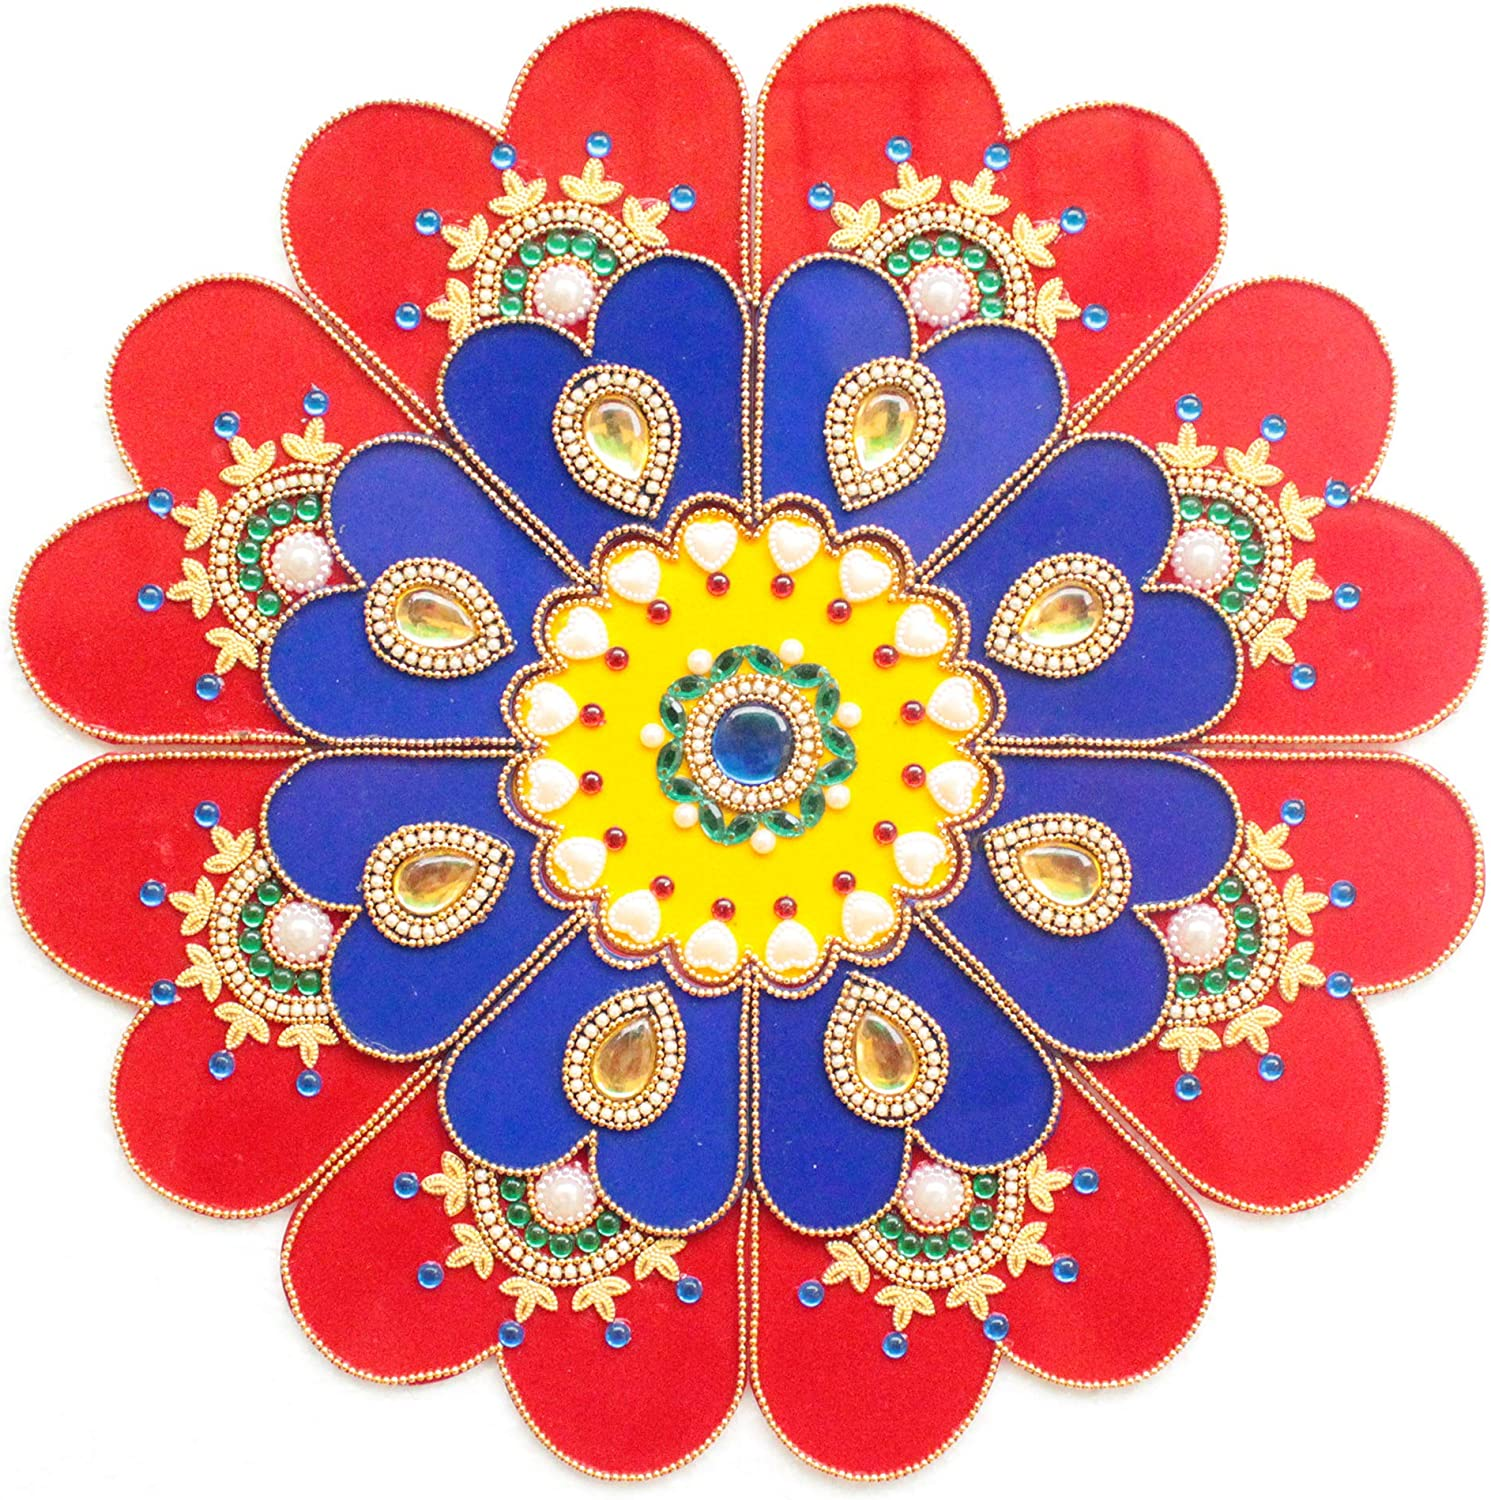 9 Piece Floor/Wall/Table Decor Accents - Acrylic Handmade Mandala Rangoli Home Decorations